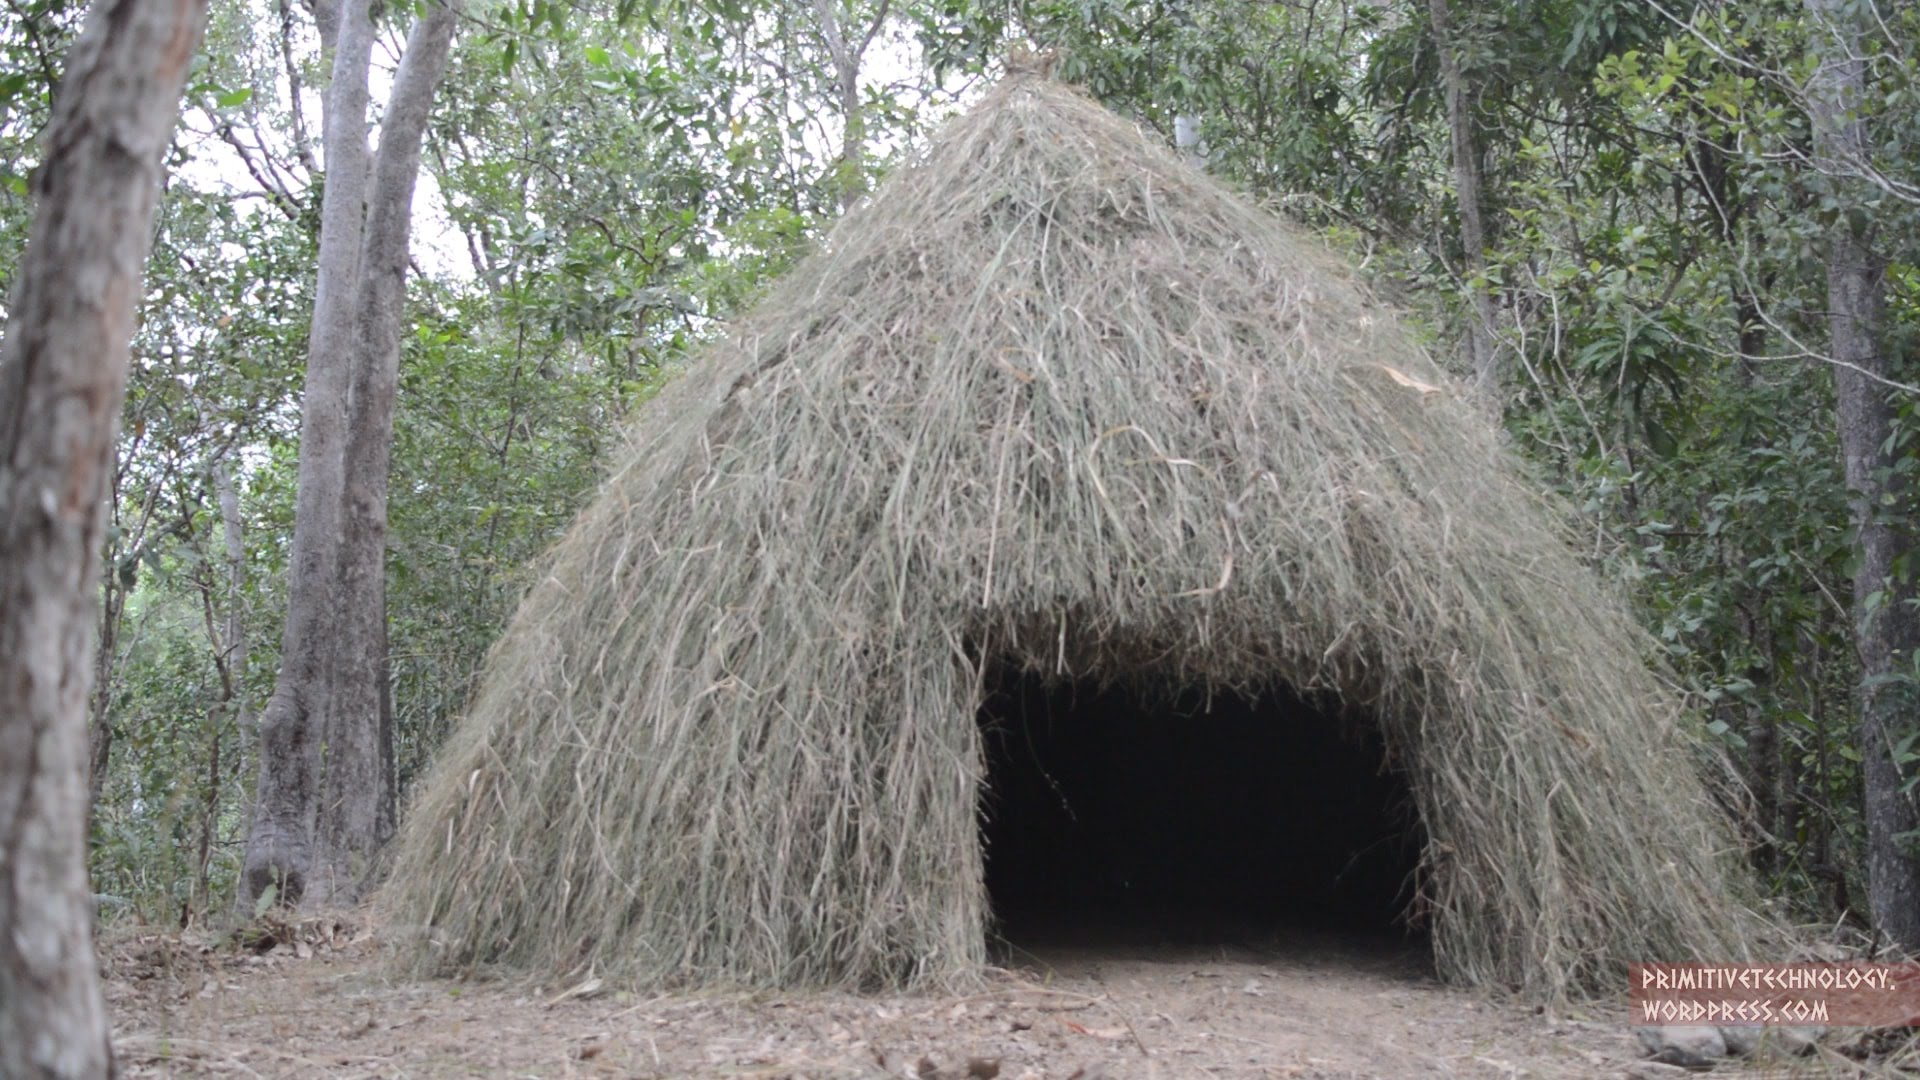 How To Build A Grass Hut Primitive Technology The Kid